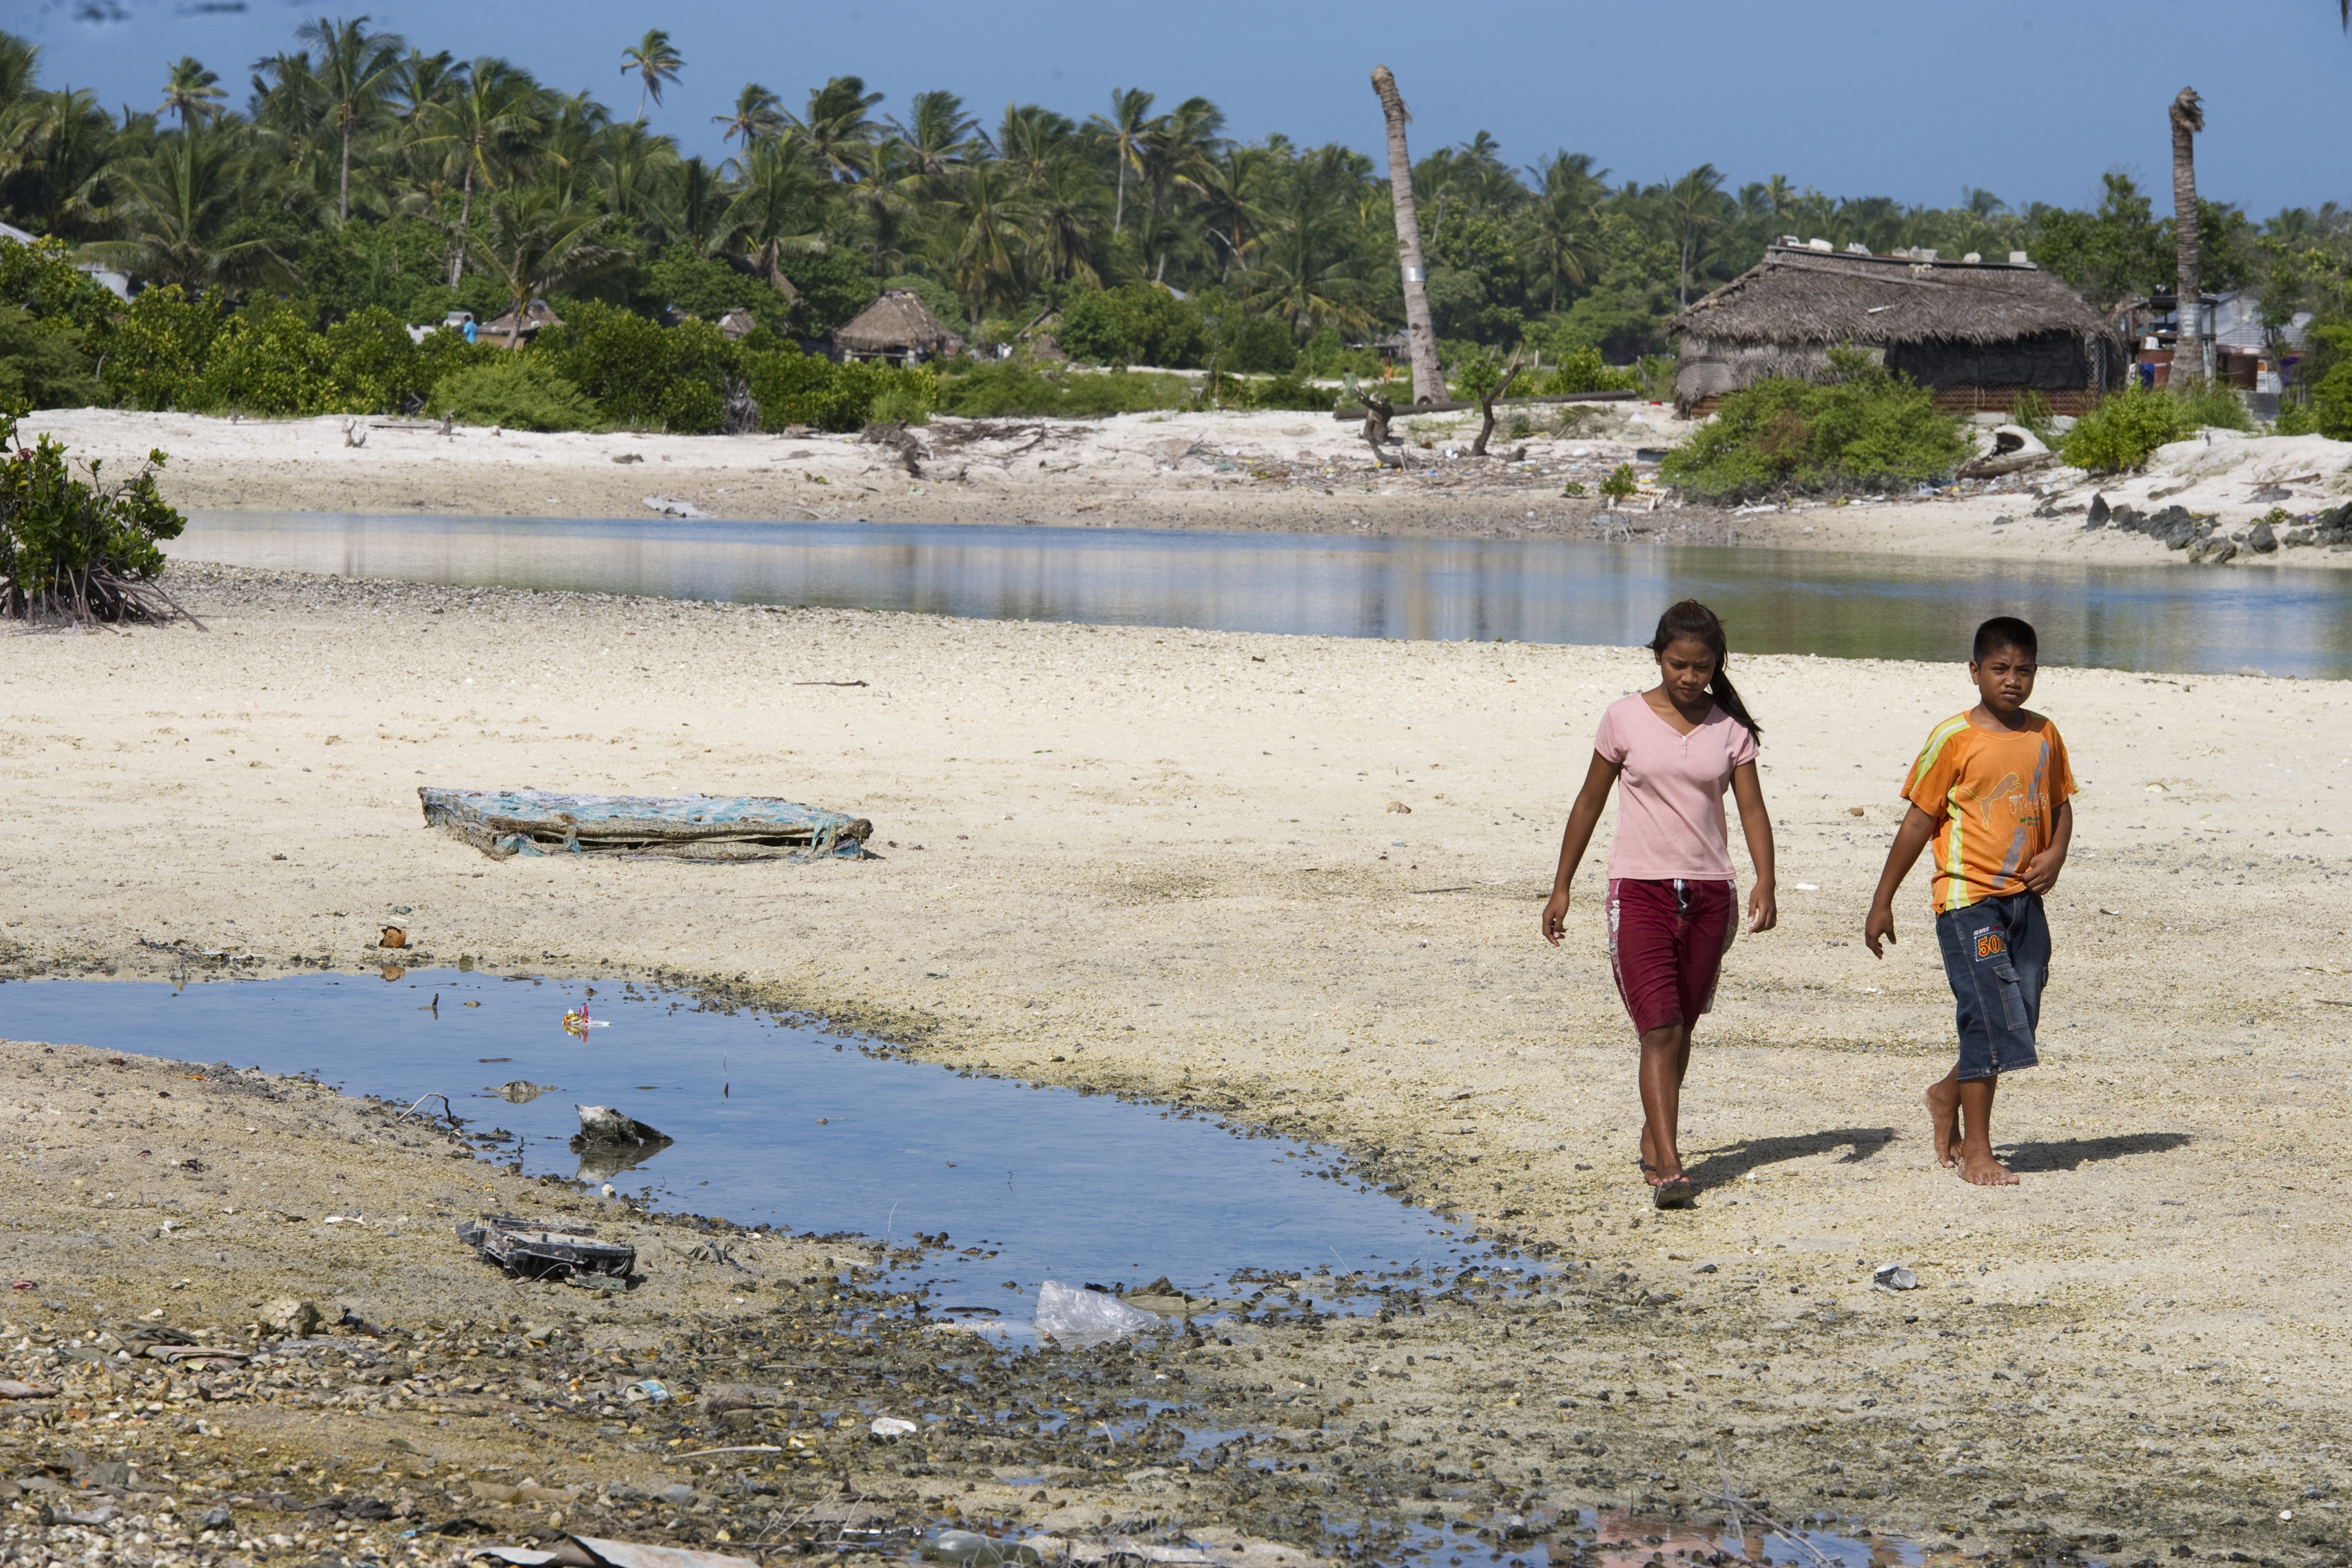 Locals in Tebikenikora, a village in the Pacific island nation of Kiribati. When tide is high the sea water very easily overflows the surrounding land making it impossible for people to use this land. Photo credit: UN Photo/Eskinder Debebe/Flickr.